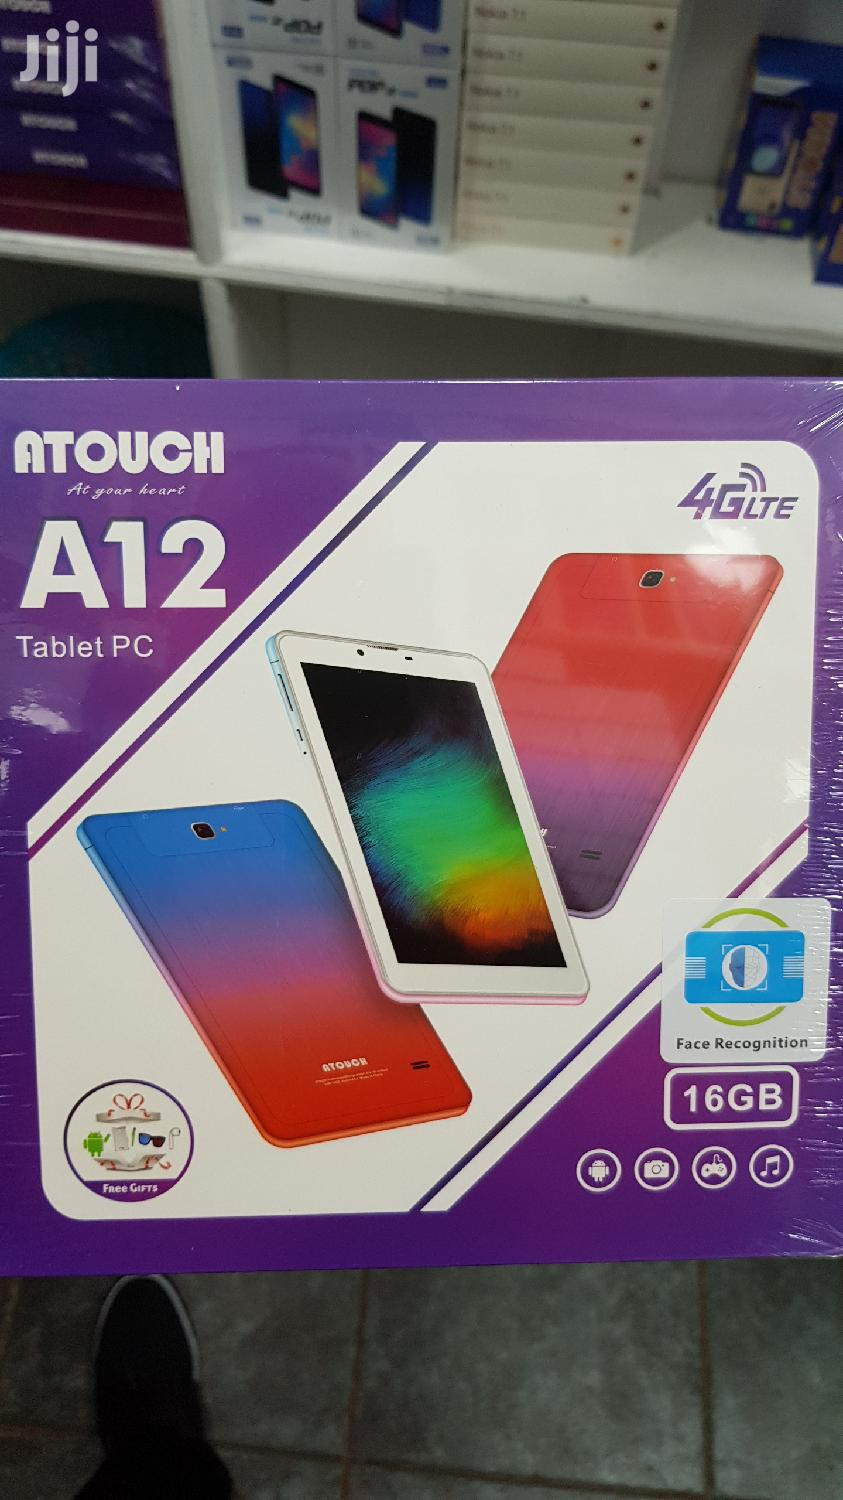 Kids Tablet Atouch A12 16gb 1gb Dual Sim Card 4G Android 6 Free Gift